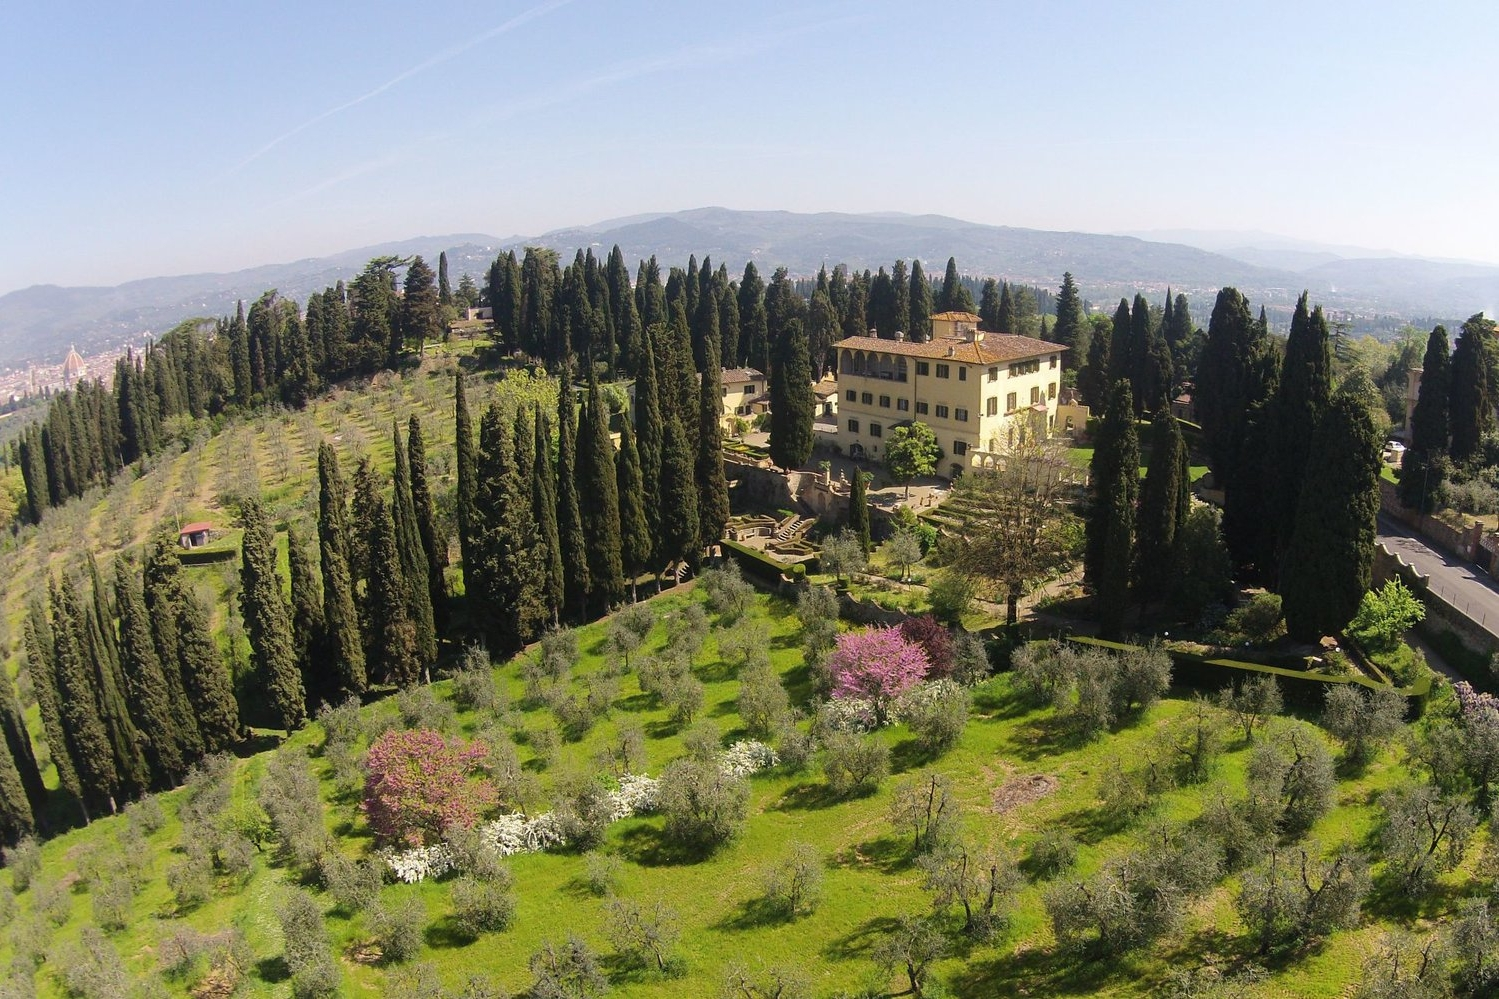 Villa Agape, Florence - This villa hotel was once a historic convent. It has onsite accommodation for 56 and is just 10 minutes from the centre of Florence.Read More...